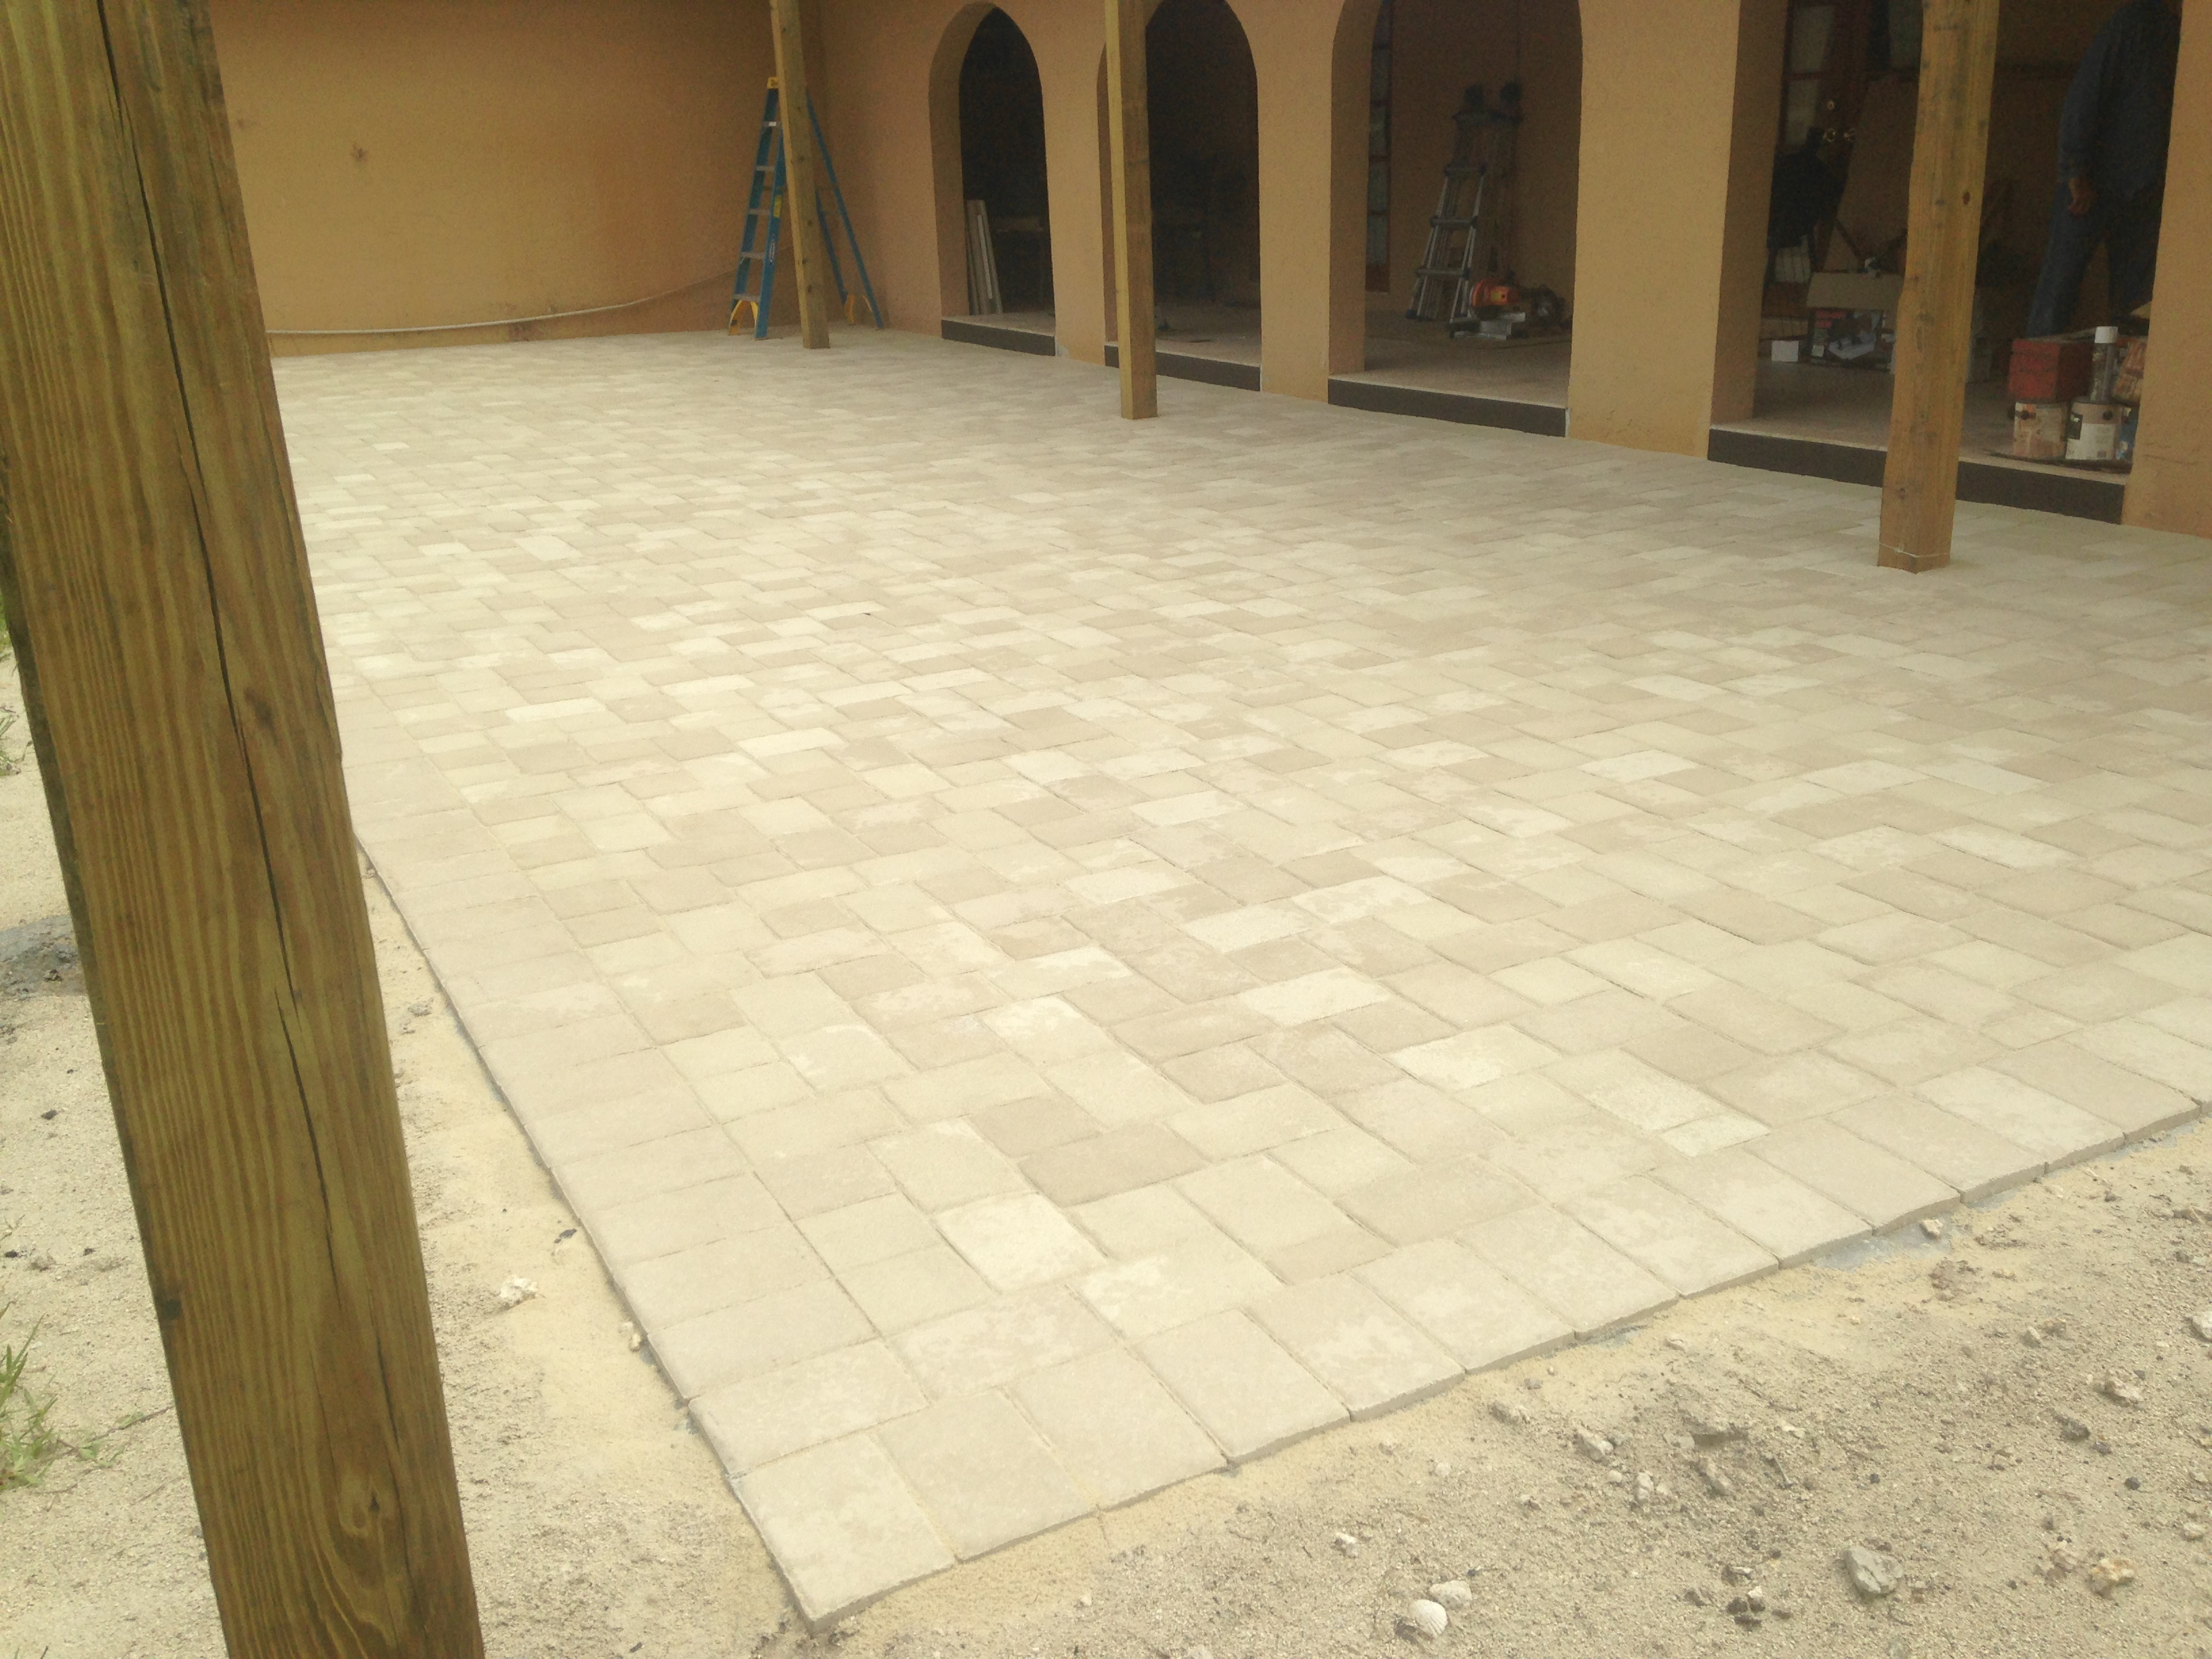 Brick Paver 6x9, Color: White and Sand Stone